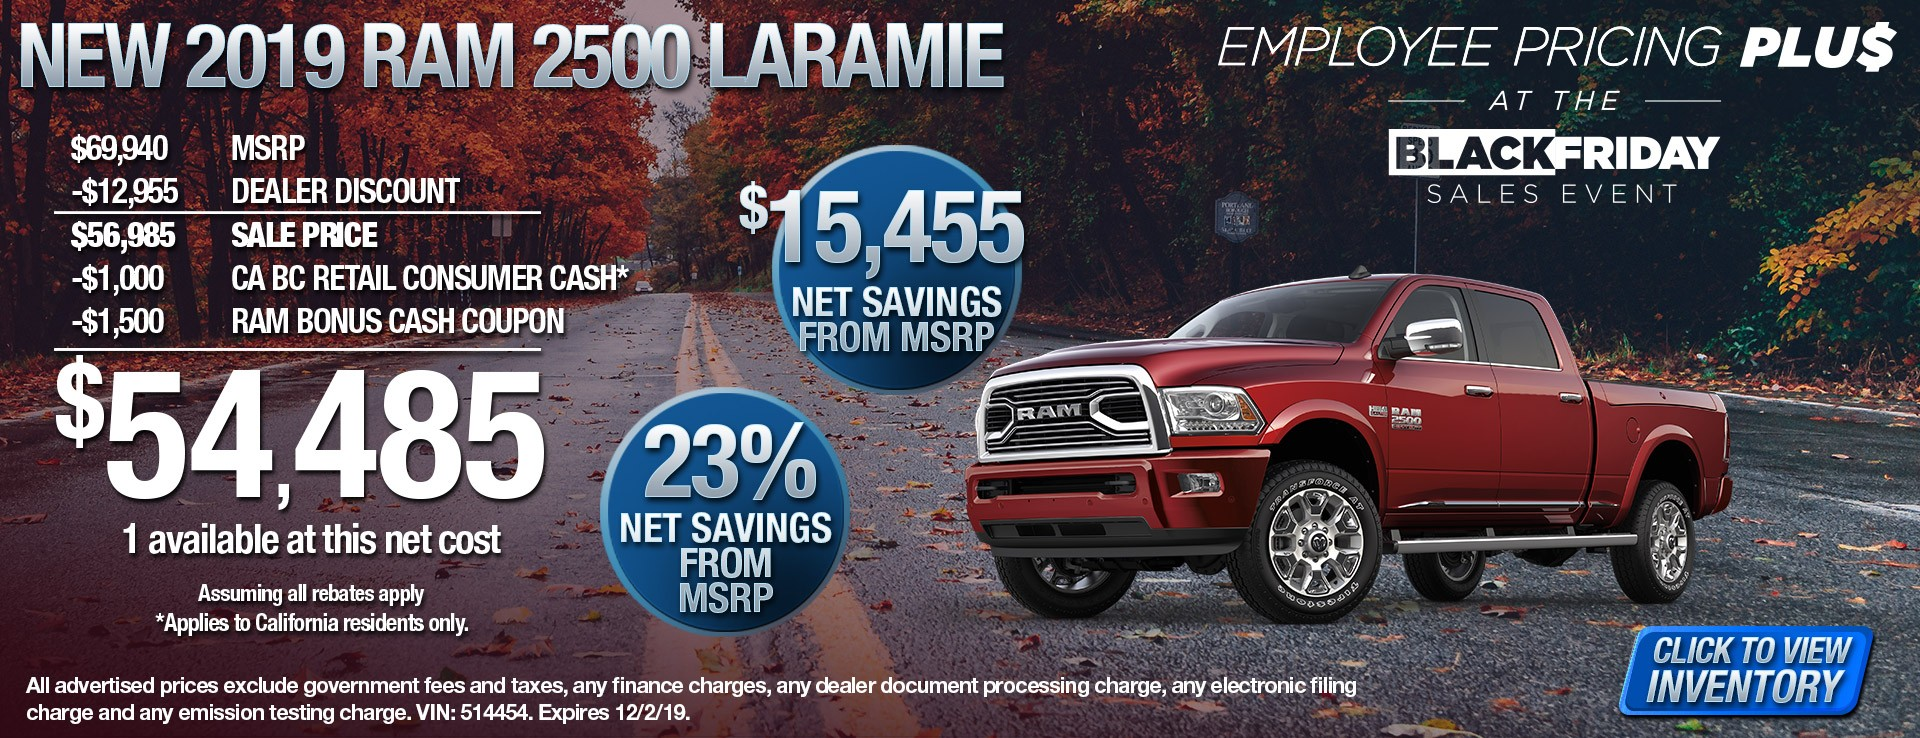 2019 Ram 2500 Laramie - $15455 Net Savings from MSRP